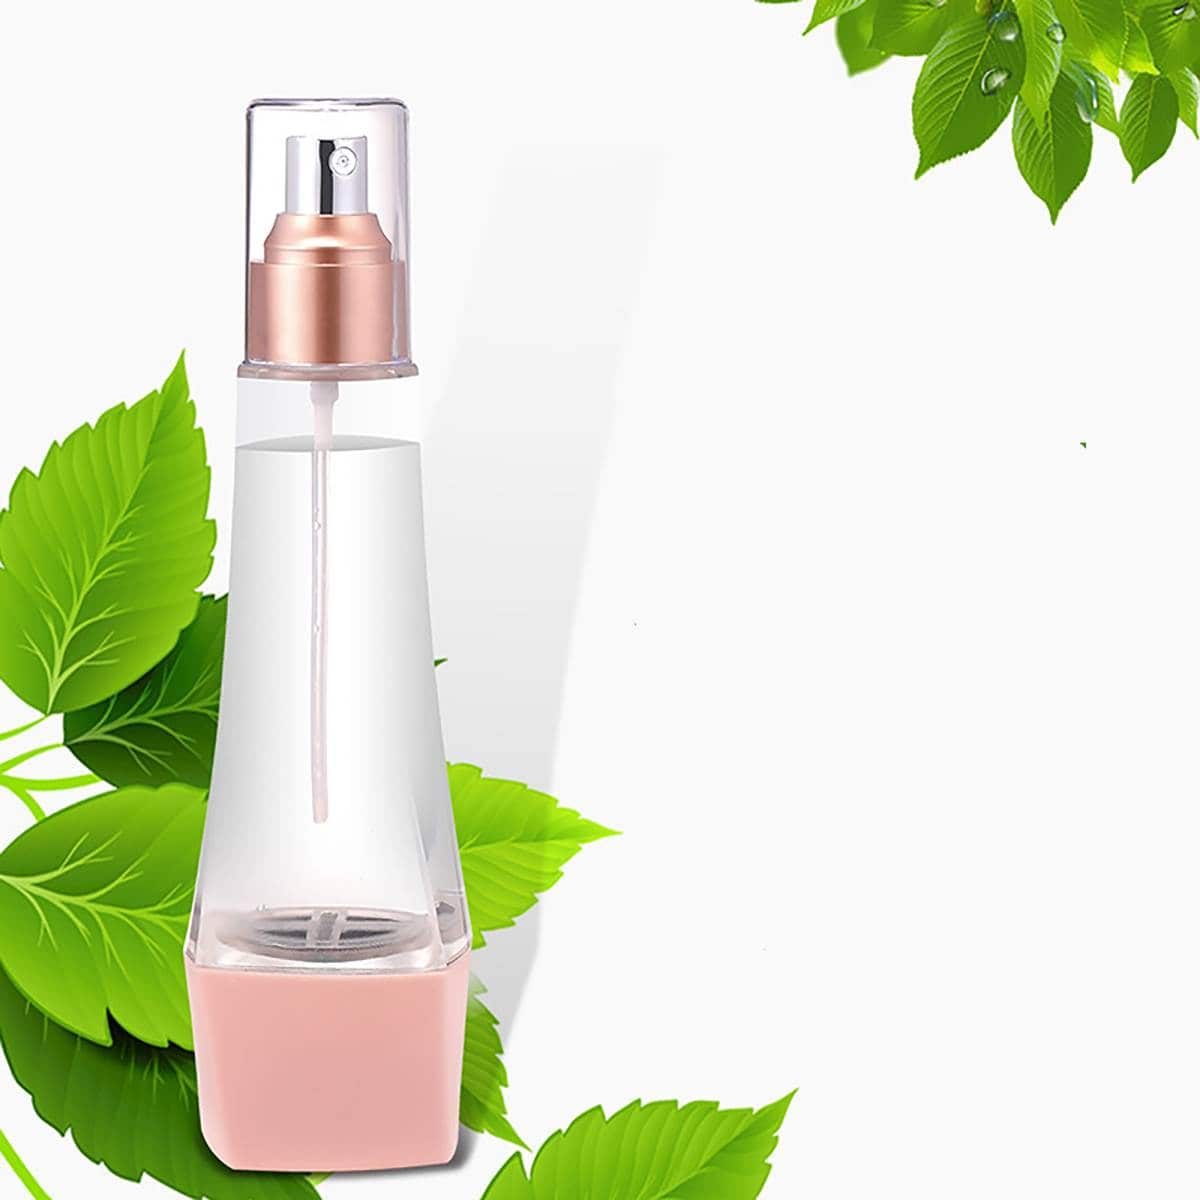 120mL USB Chargeable Disinfectant Liquid Generator with Uniform Atomization Effect